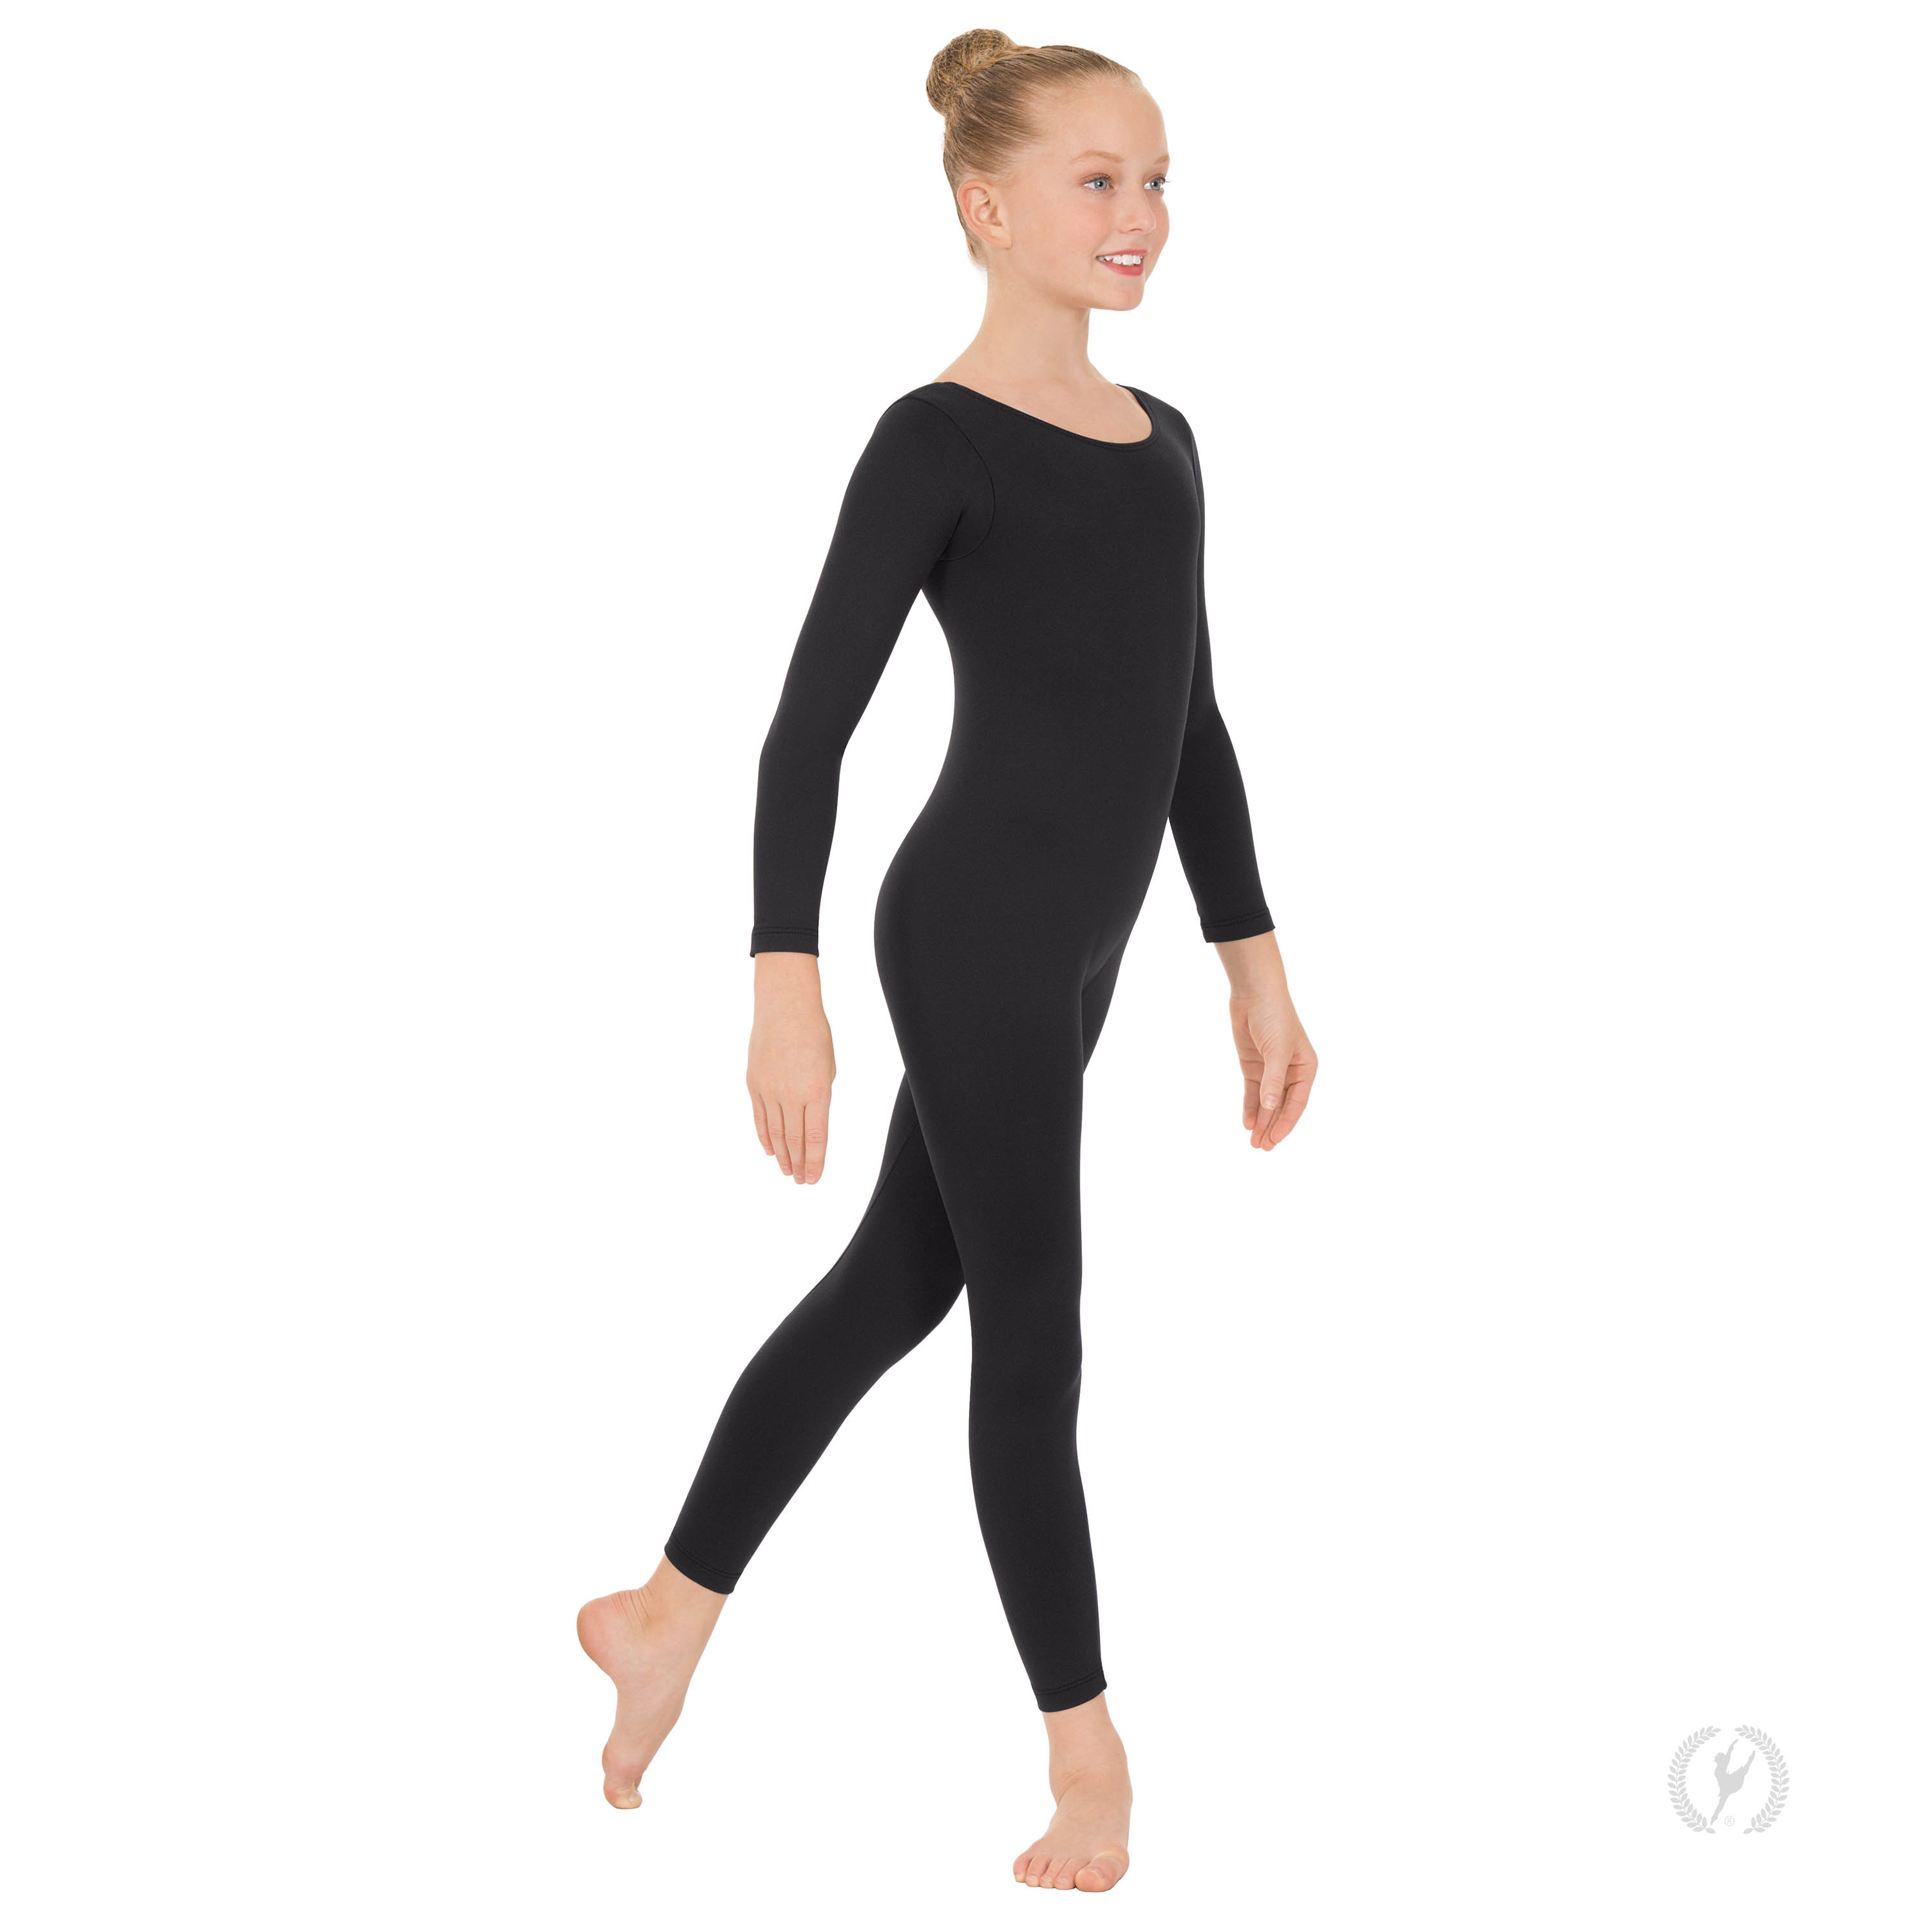 Youth Unisex Long Sleeve Unitard with Cotton Lycra ...